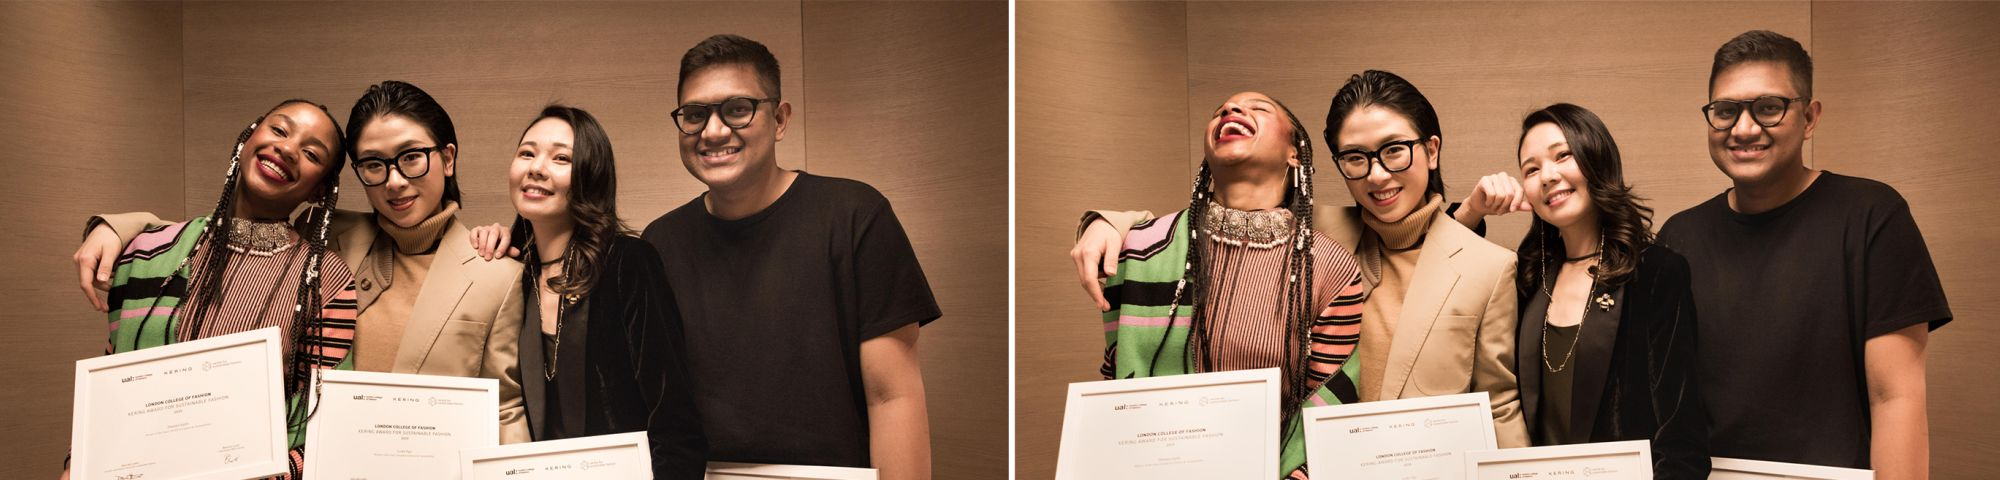 Winners of the Kering Awards with their awards